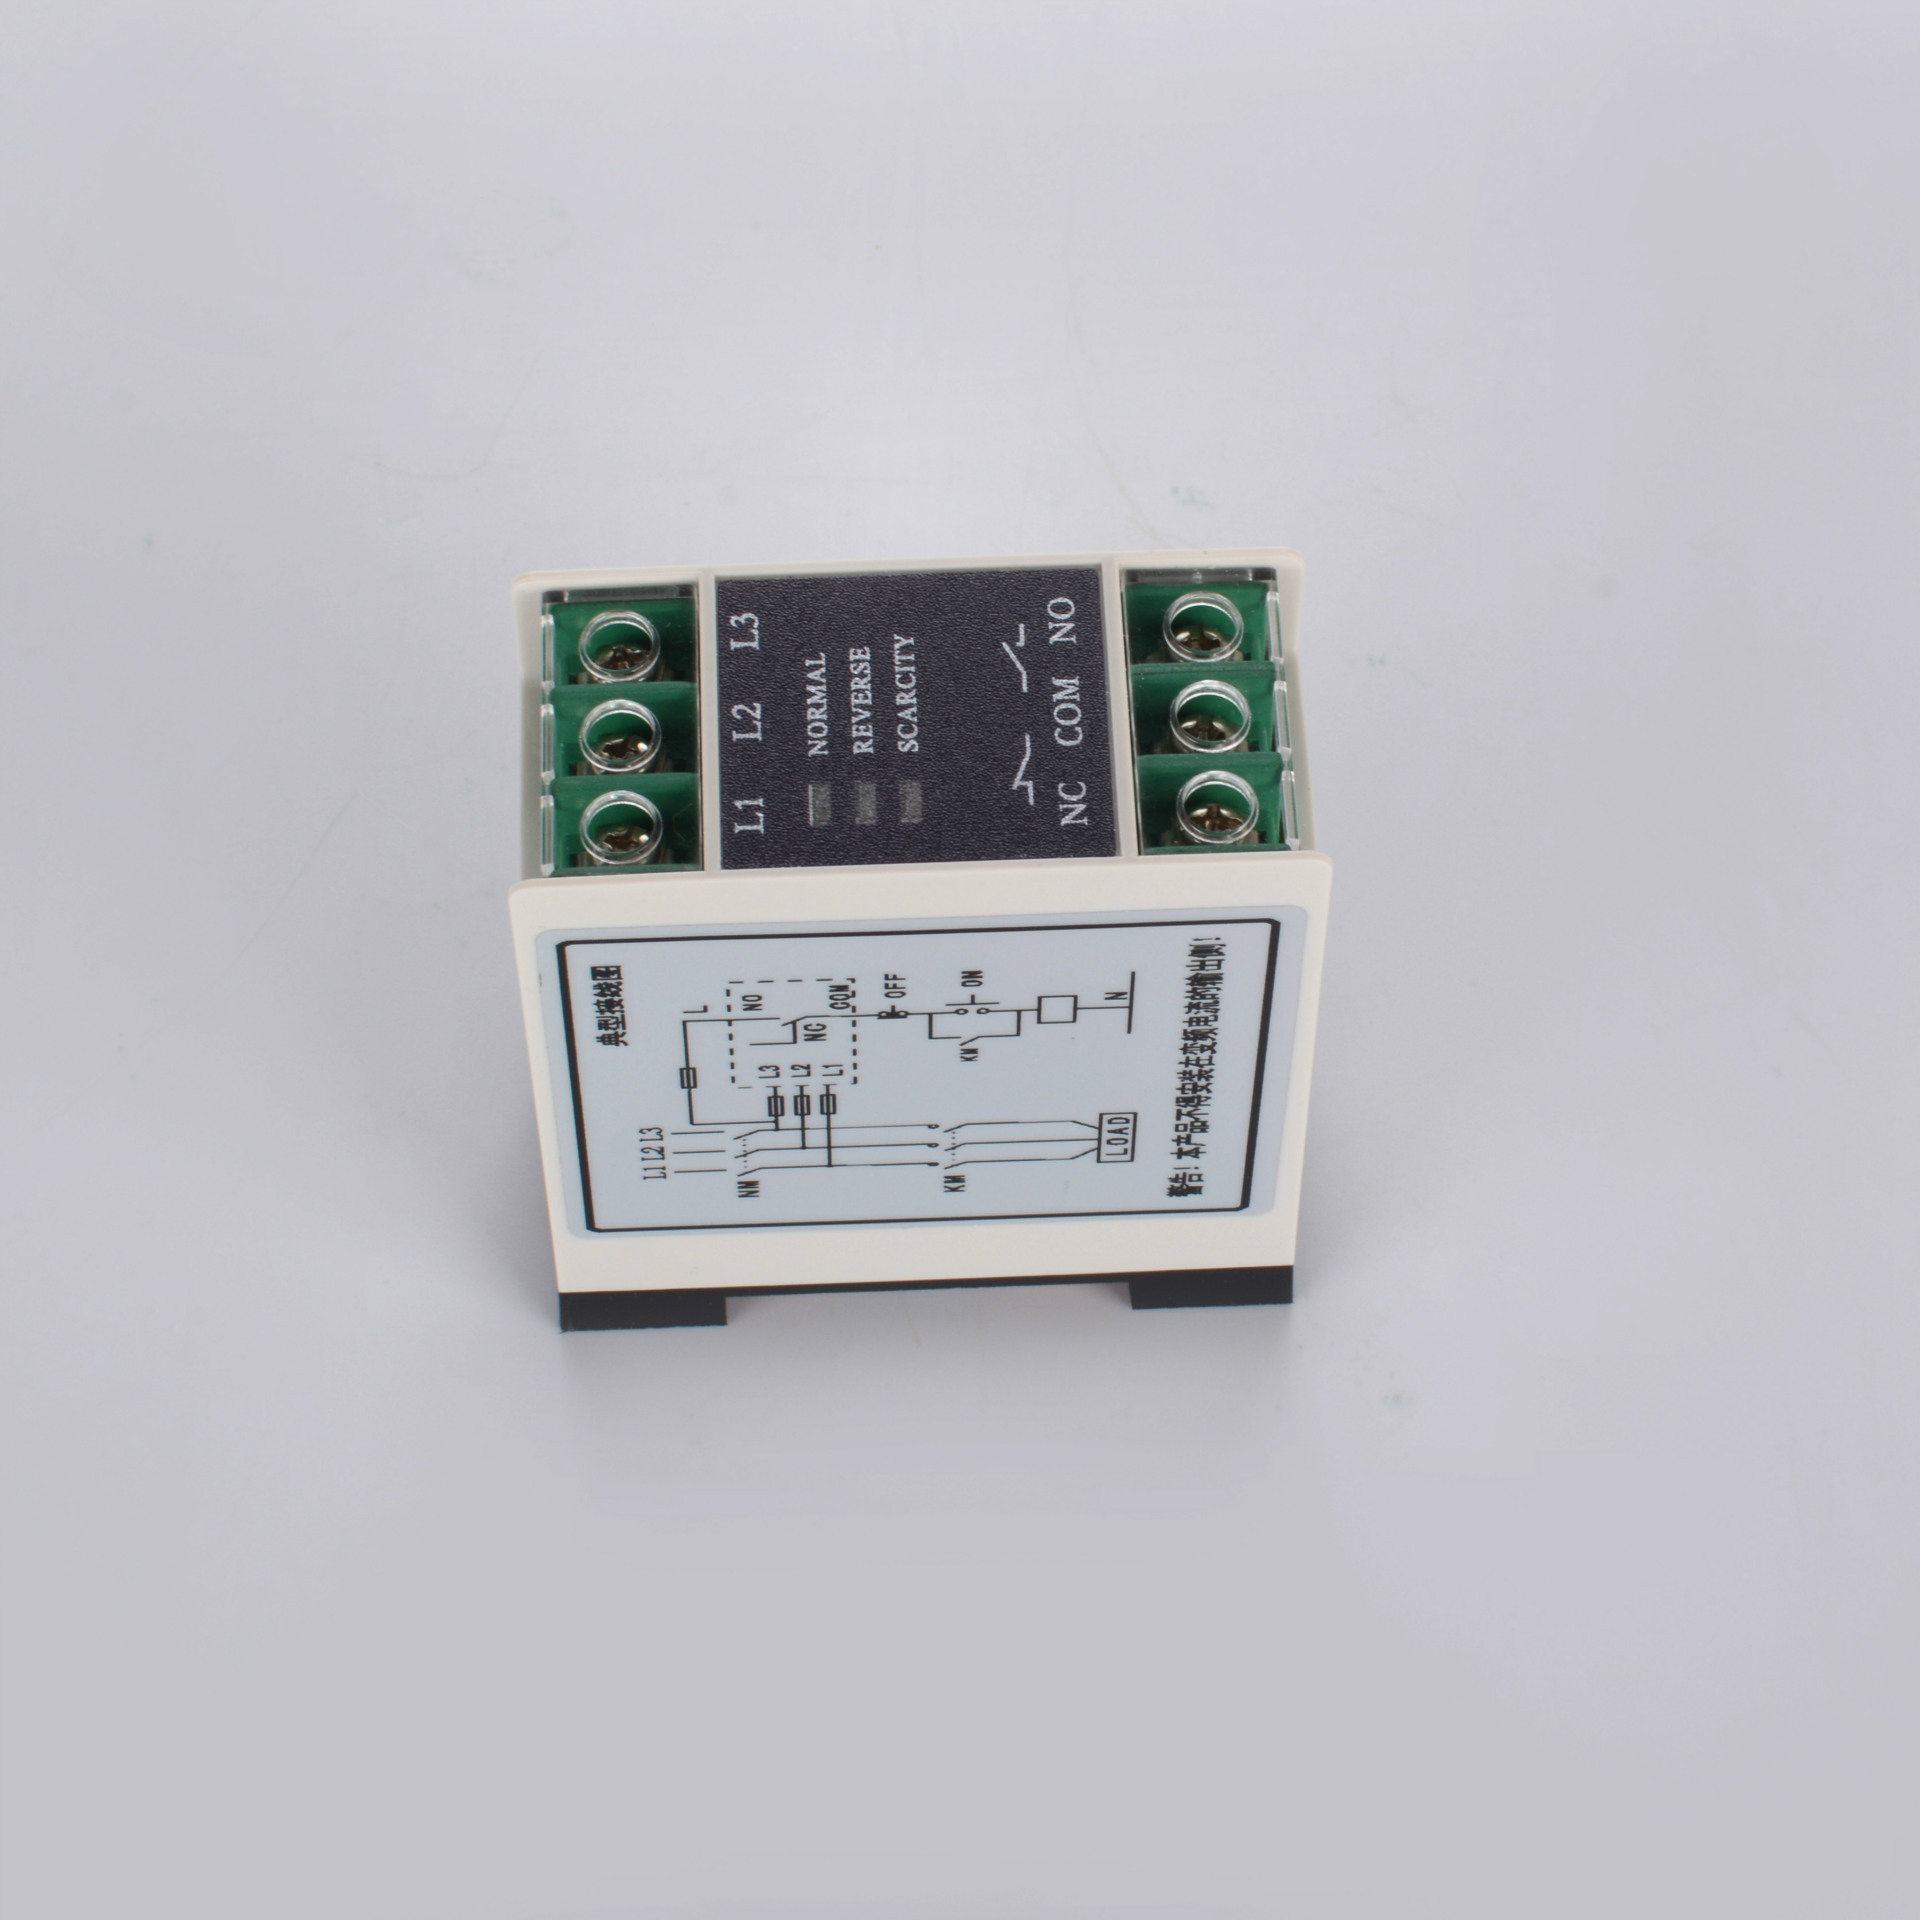 Motor protection, motor phase protection, motor phase sequence protection TL-2238 / TG30 genuine